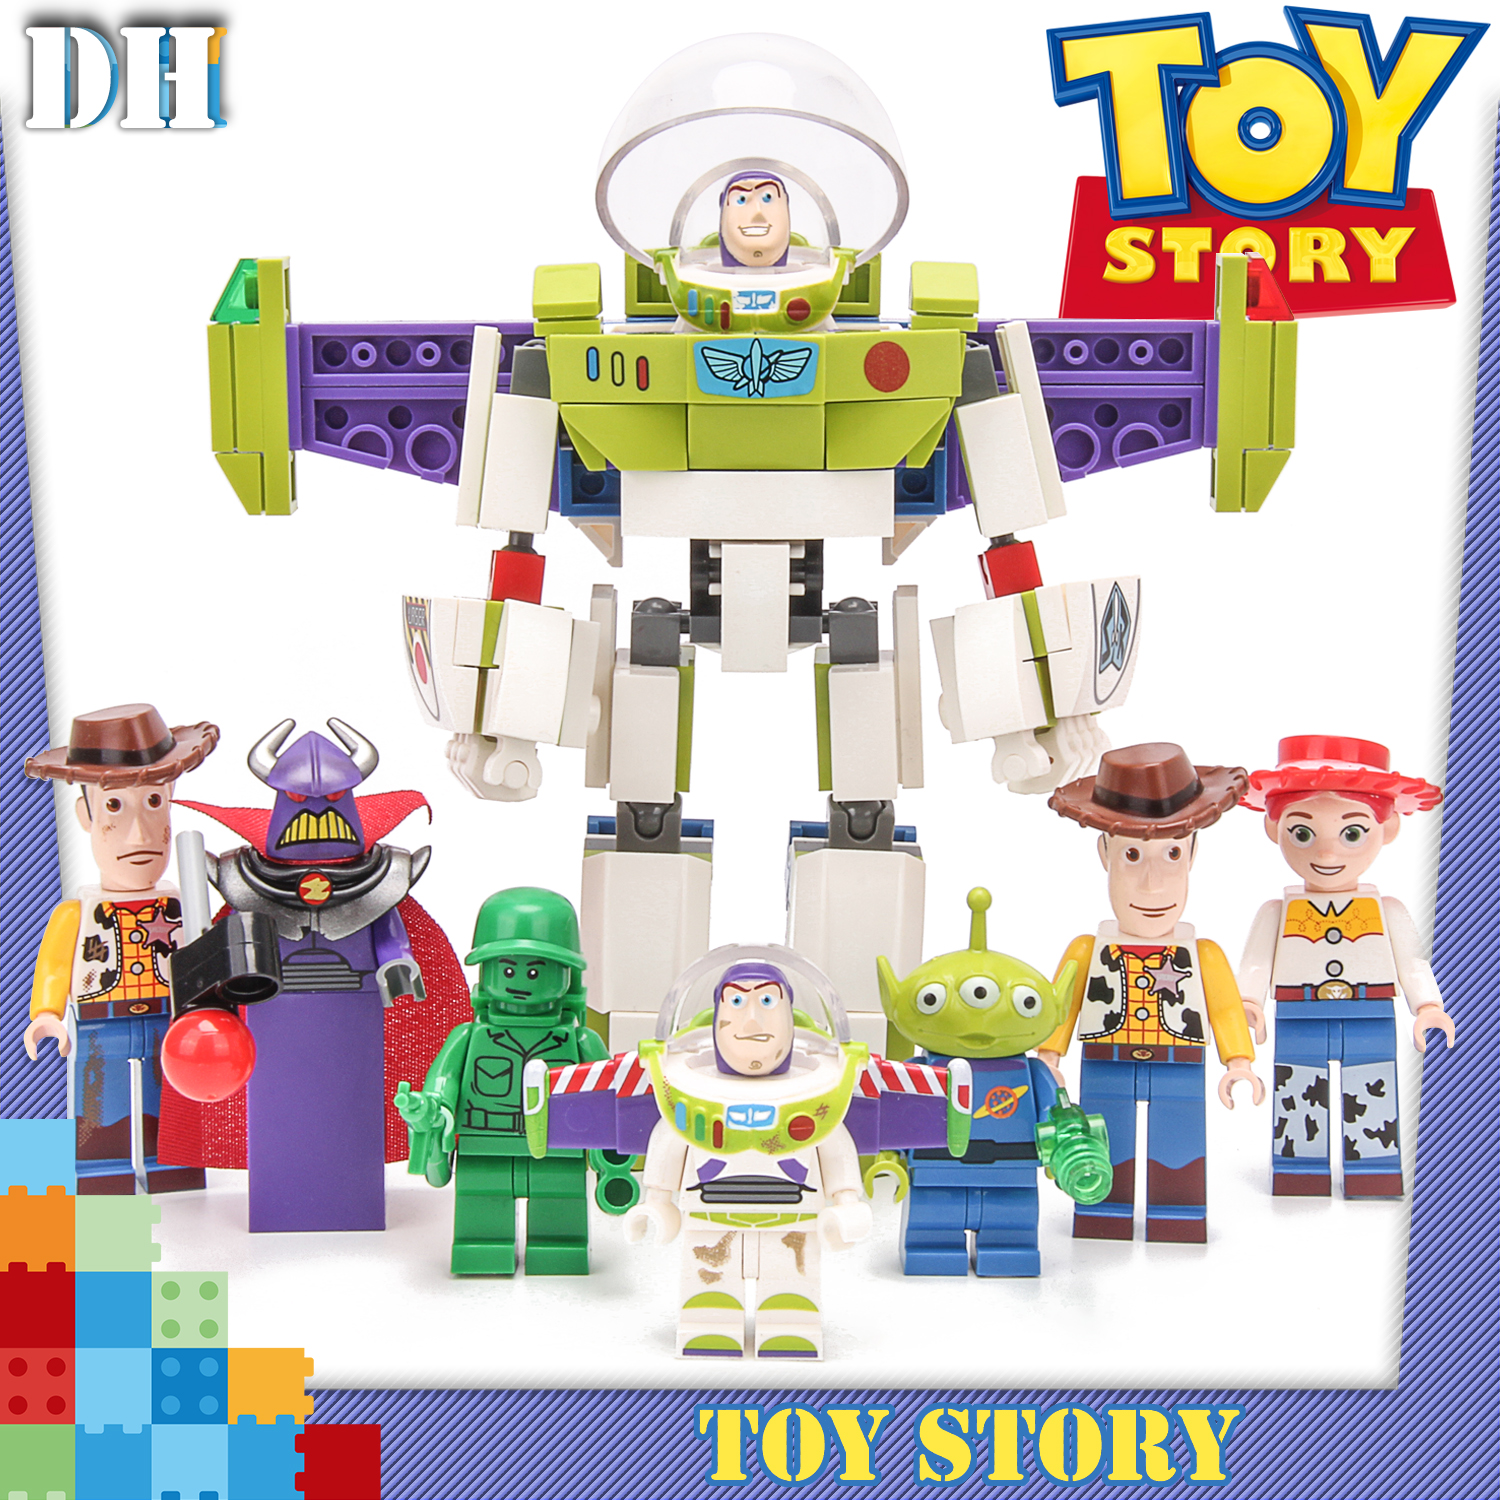 8 in1 Toy Story 4 Figures Gremlins Gizmo Woody Buzz Lightyear Jessie Andy Super Mario Building Blocks Friend toys-in Blocks from Toys & Hobbies